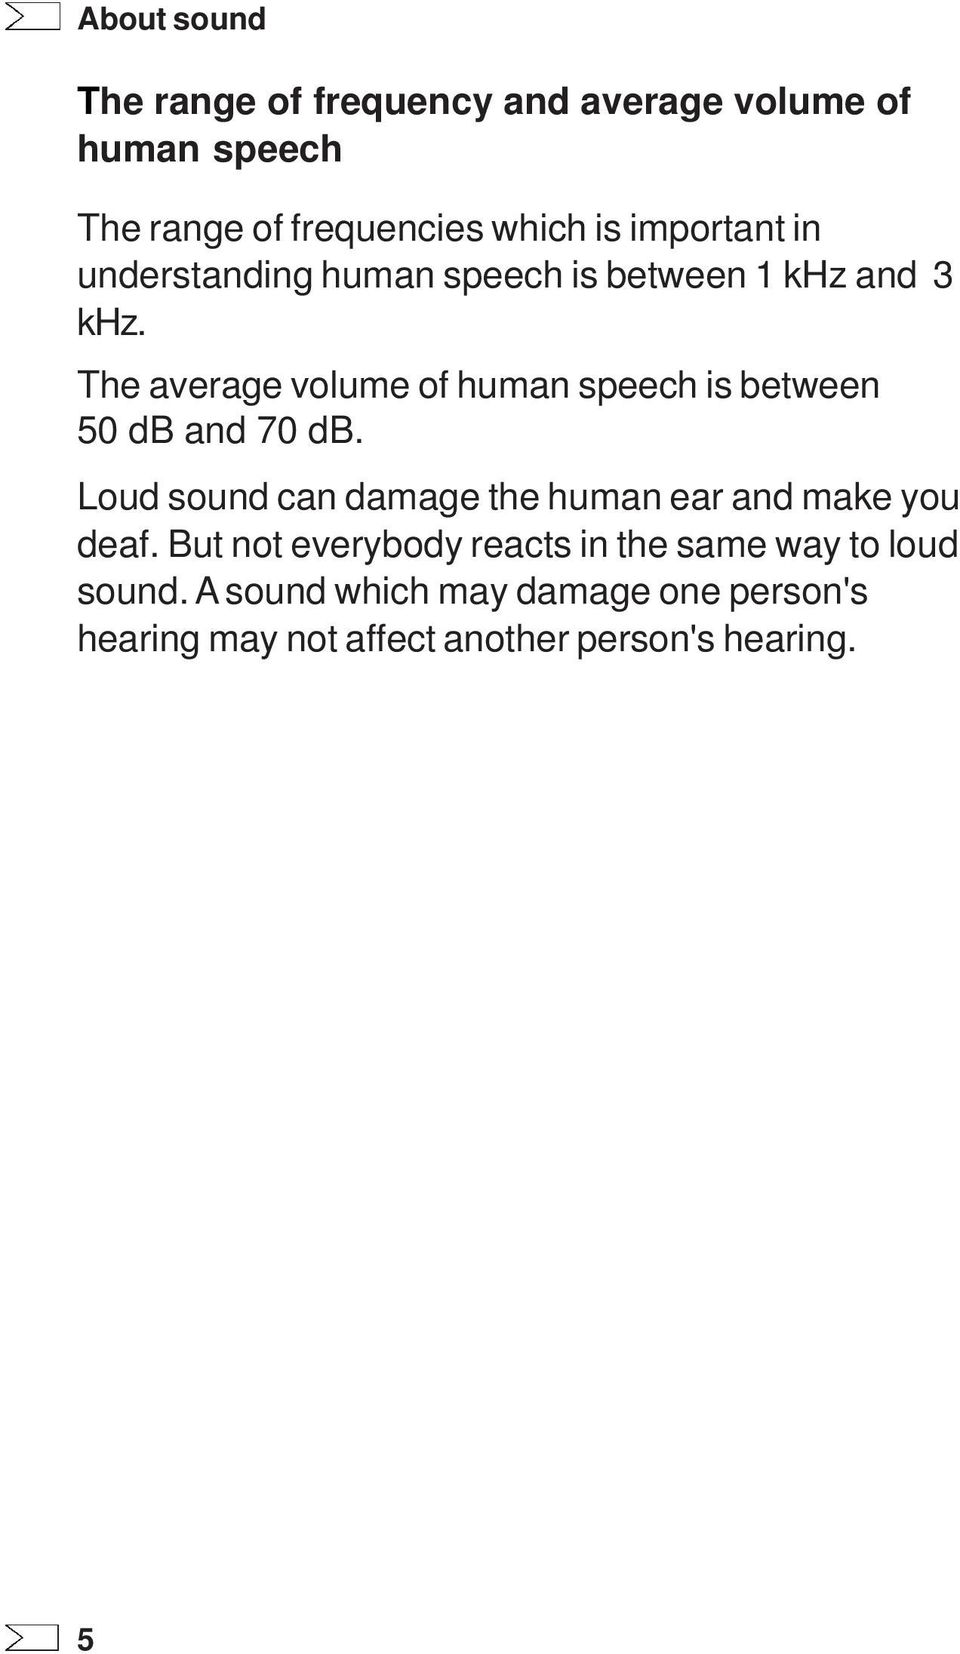 The average volume of human speech is between 50 db and 70 db.